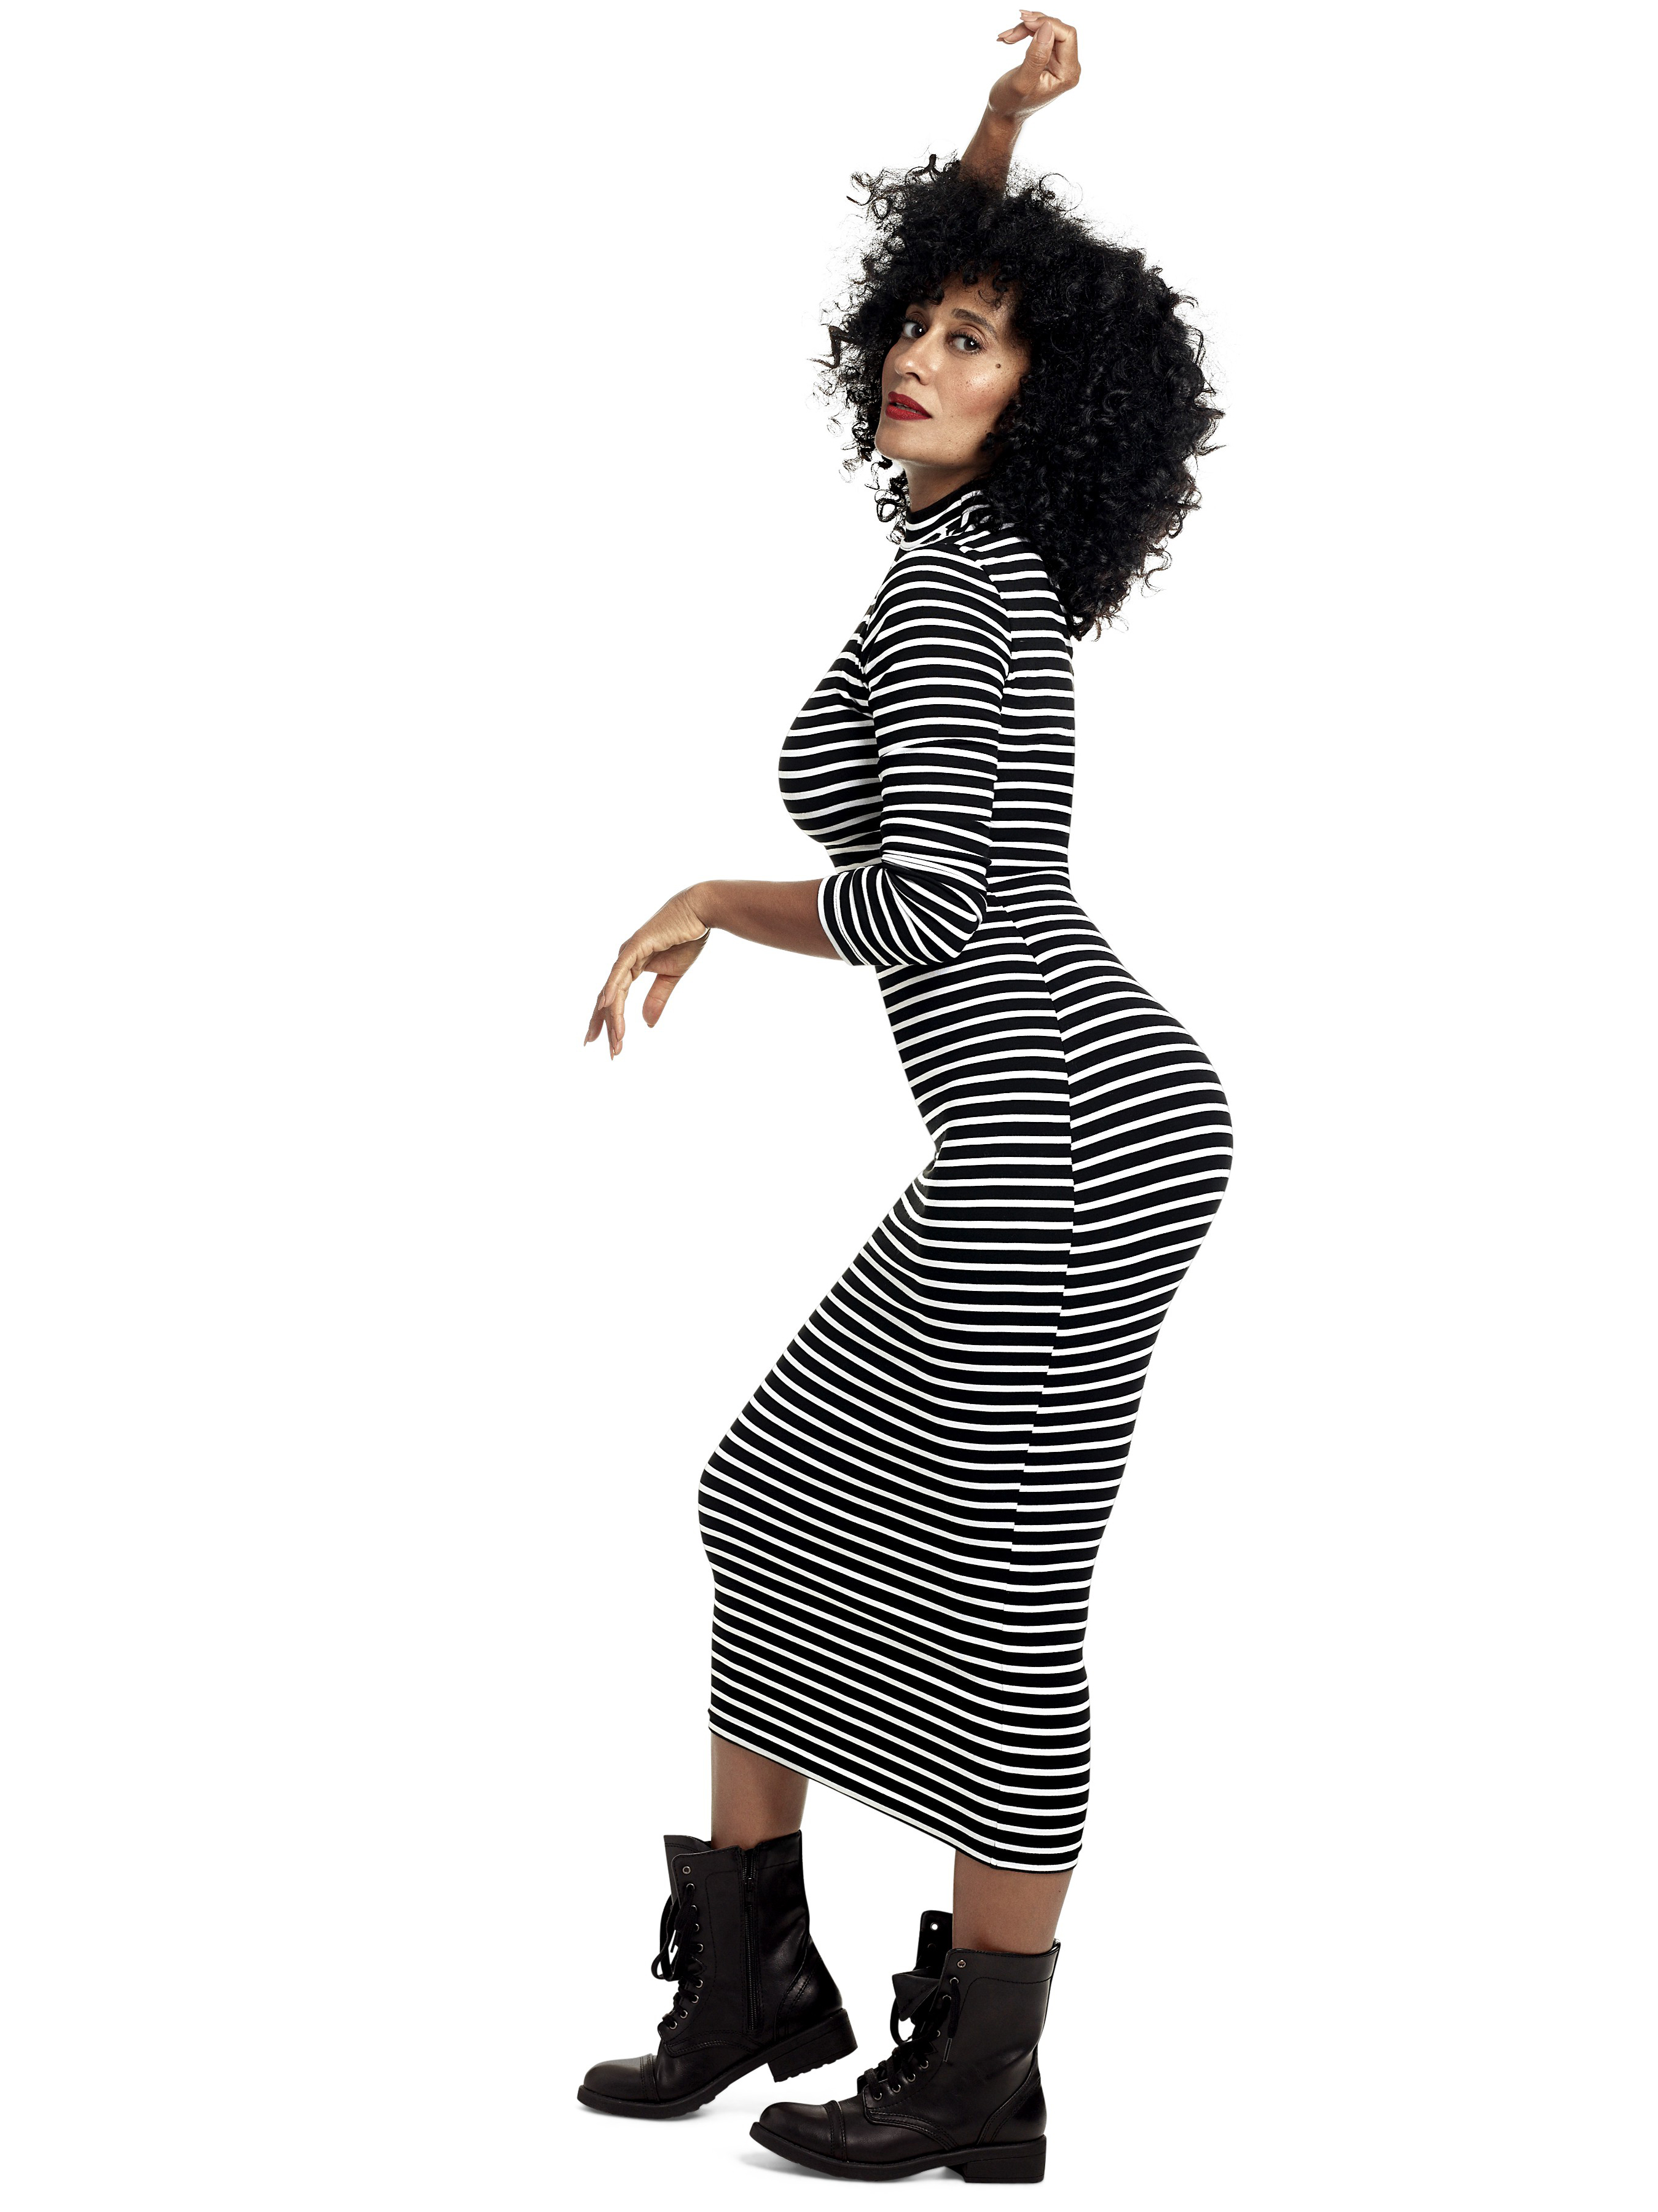 Dresses from ross - Tracee Ellis Ross In Tracee Ellis Ross X Jc Penny Stretchy Striped Dress